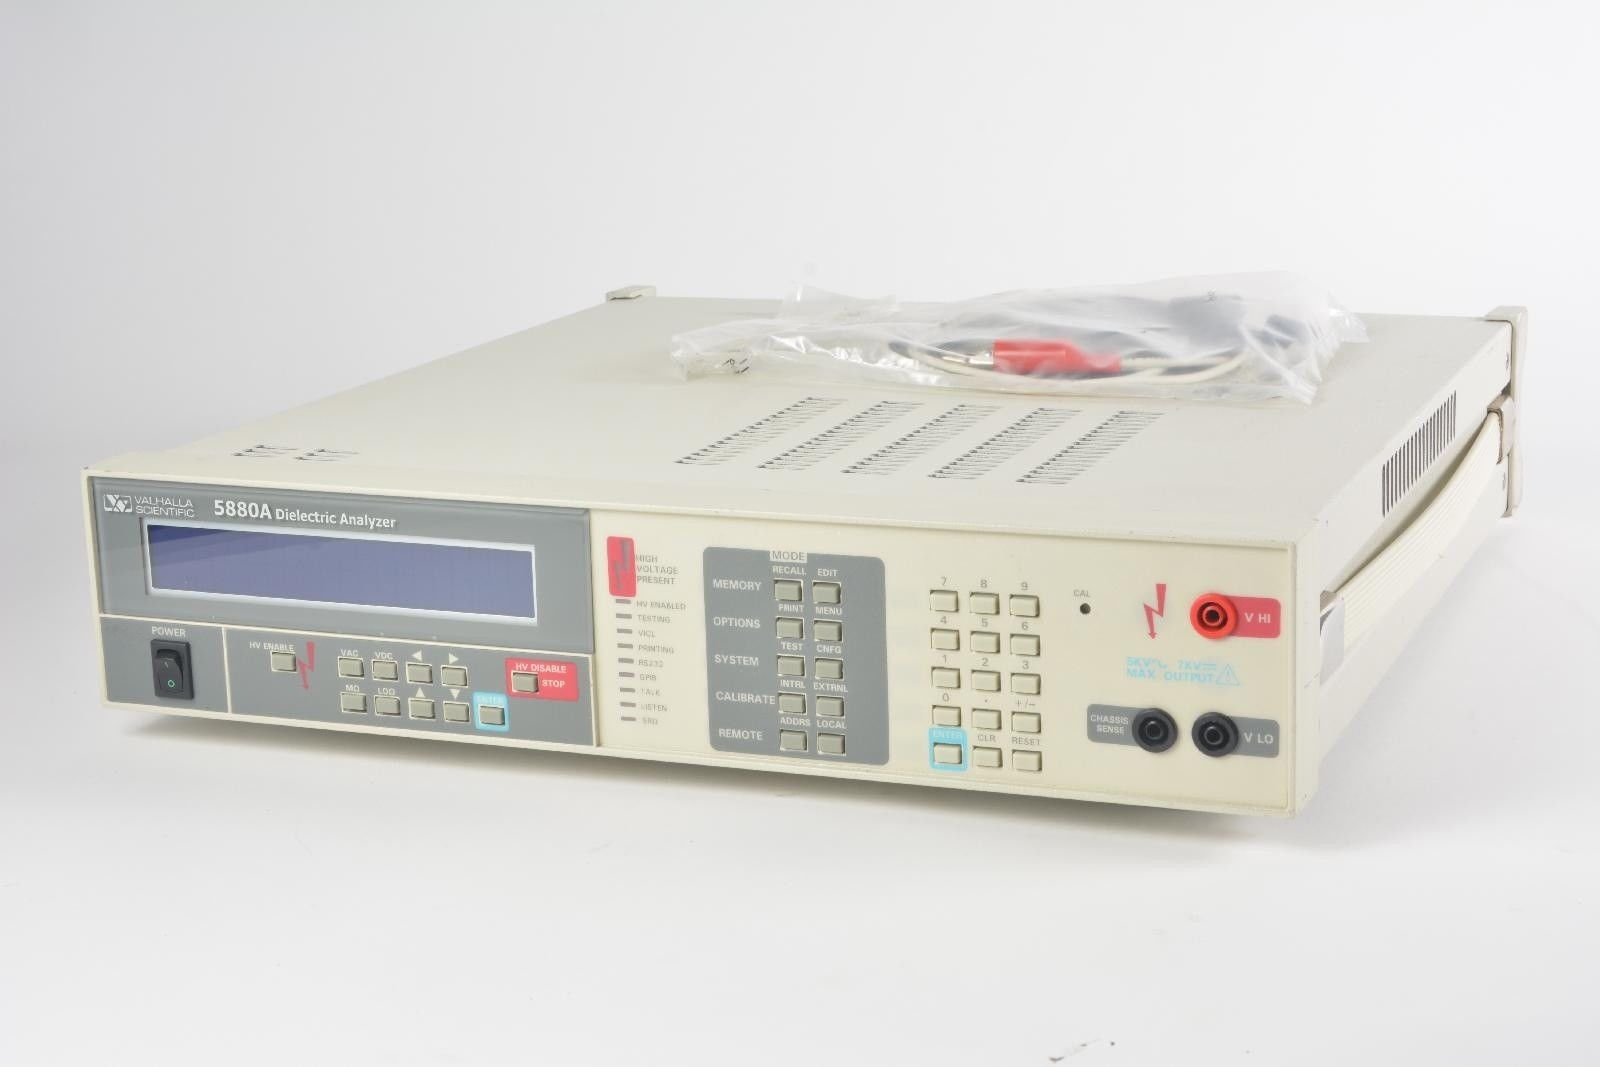 valhalla-scientific-5880a-dielectric-ac-dc-power-analyzer-50hz-100hz-used-equipment-0.jpg